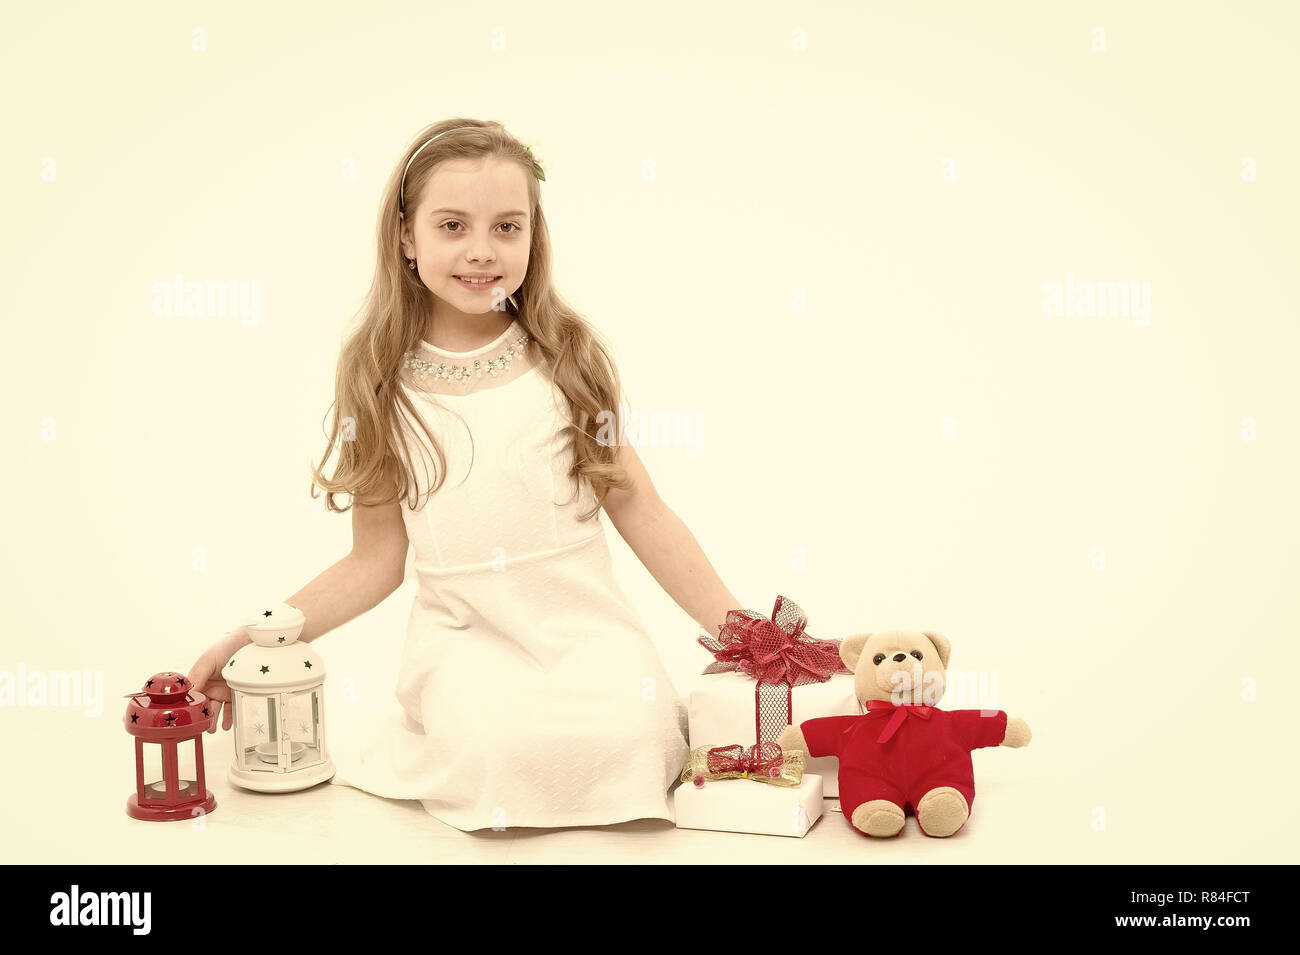 Child or happy kid with present pack isolated on white background. Small girl with gift box with red bow in dress. Christmas and birthday. Holiday celebration and mothers day. Childhood and happiness. Stock Photo